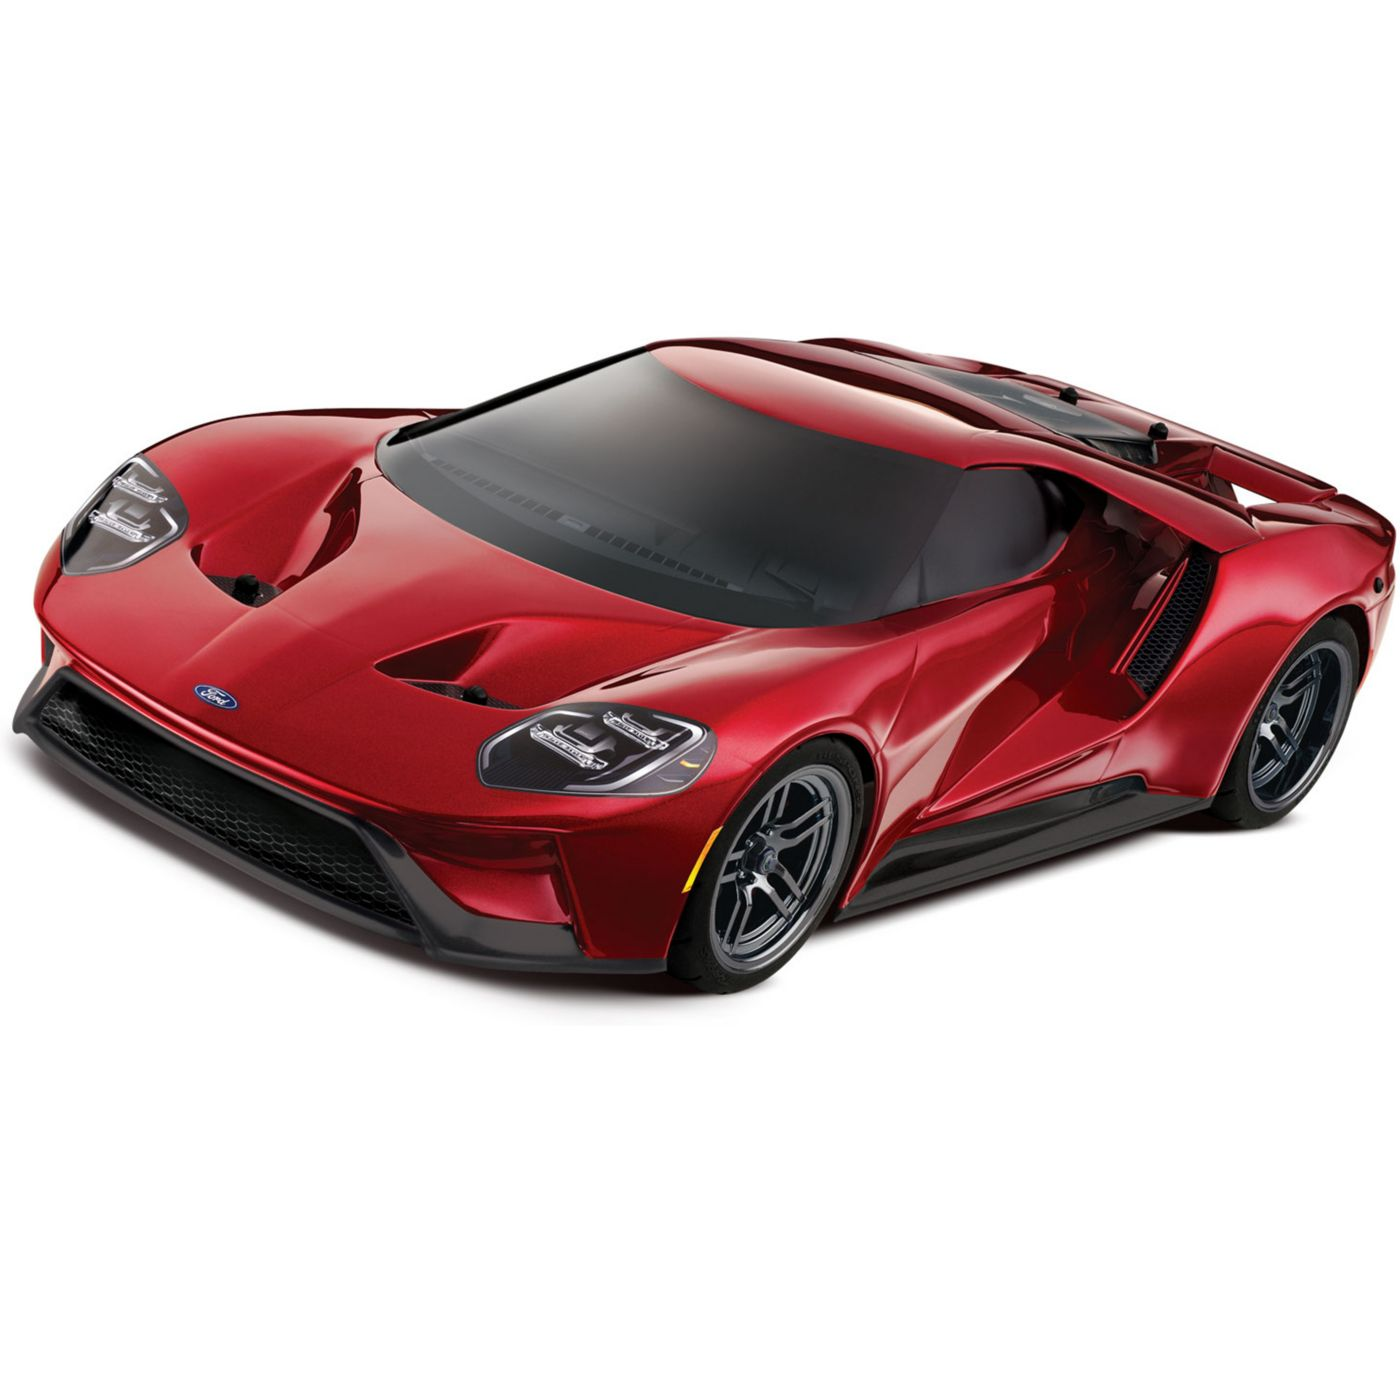 1/10 Scale Ford GT AWD Supercar RTR with XL-5 and TSM, Liquid Re